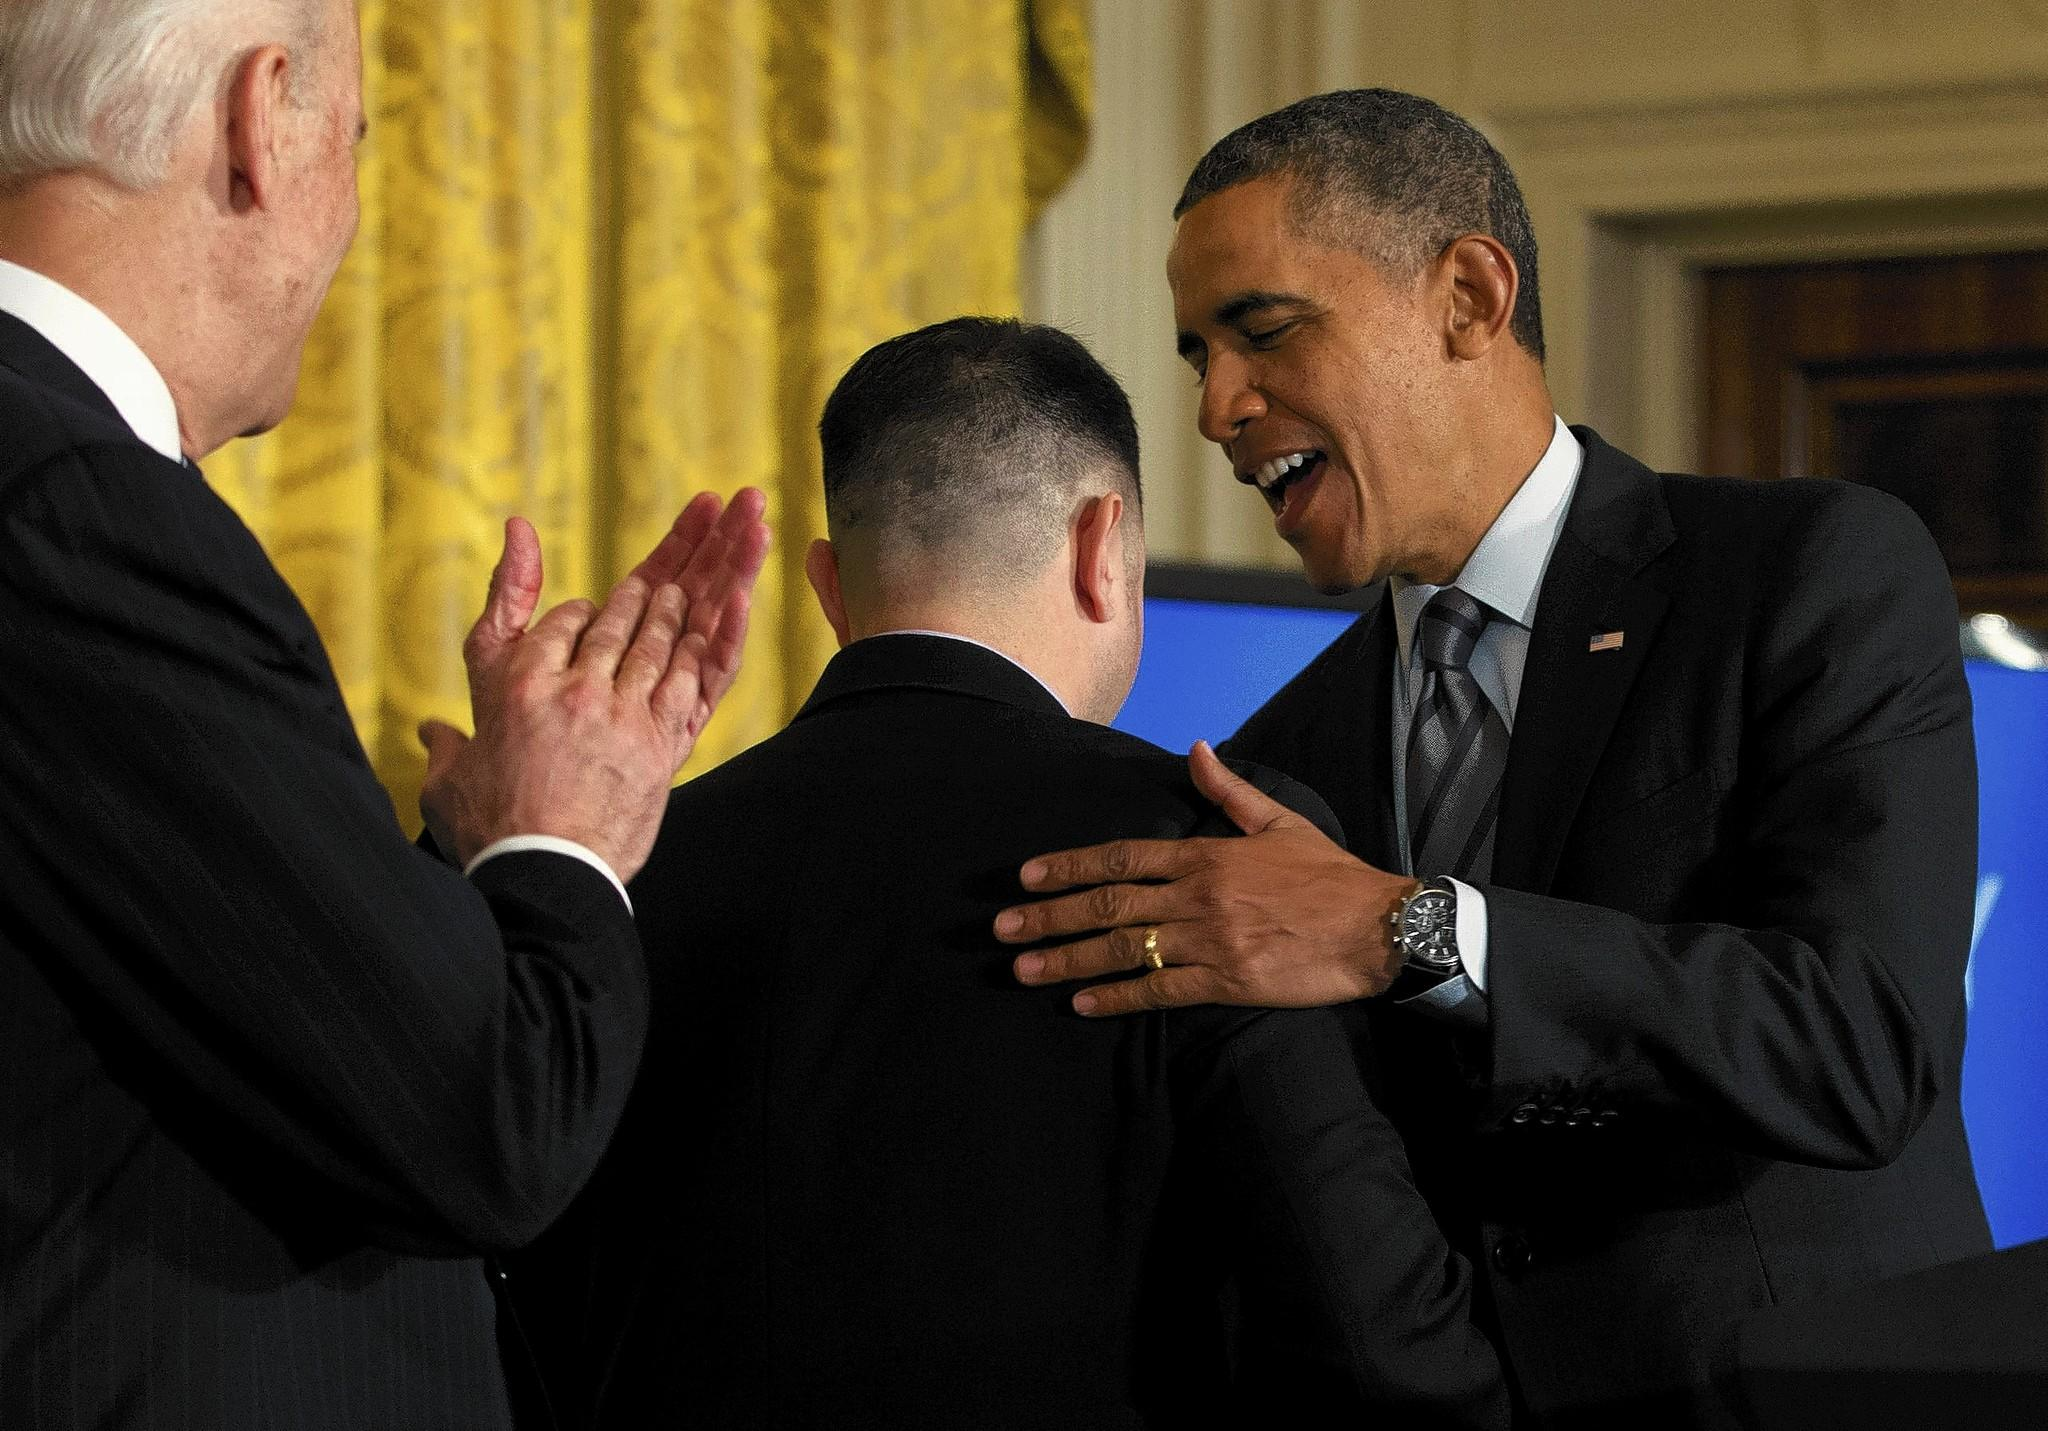 At the White House, President Obama talks with PG&E apprentice electrician Erick Varela, center, a former U.S. Army combat infantryman in Iraq, as Vice President Joe Biden, left, applauds before Obama spoke about helping the long-term unemployed.